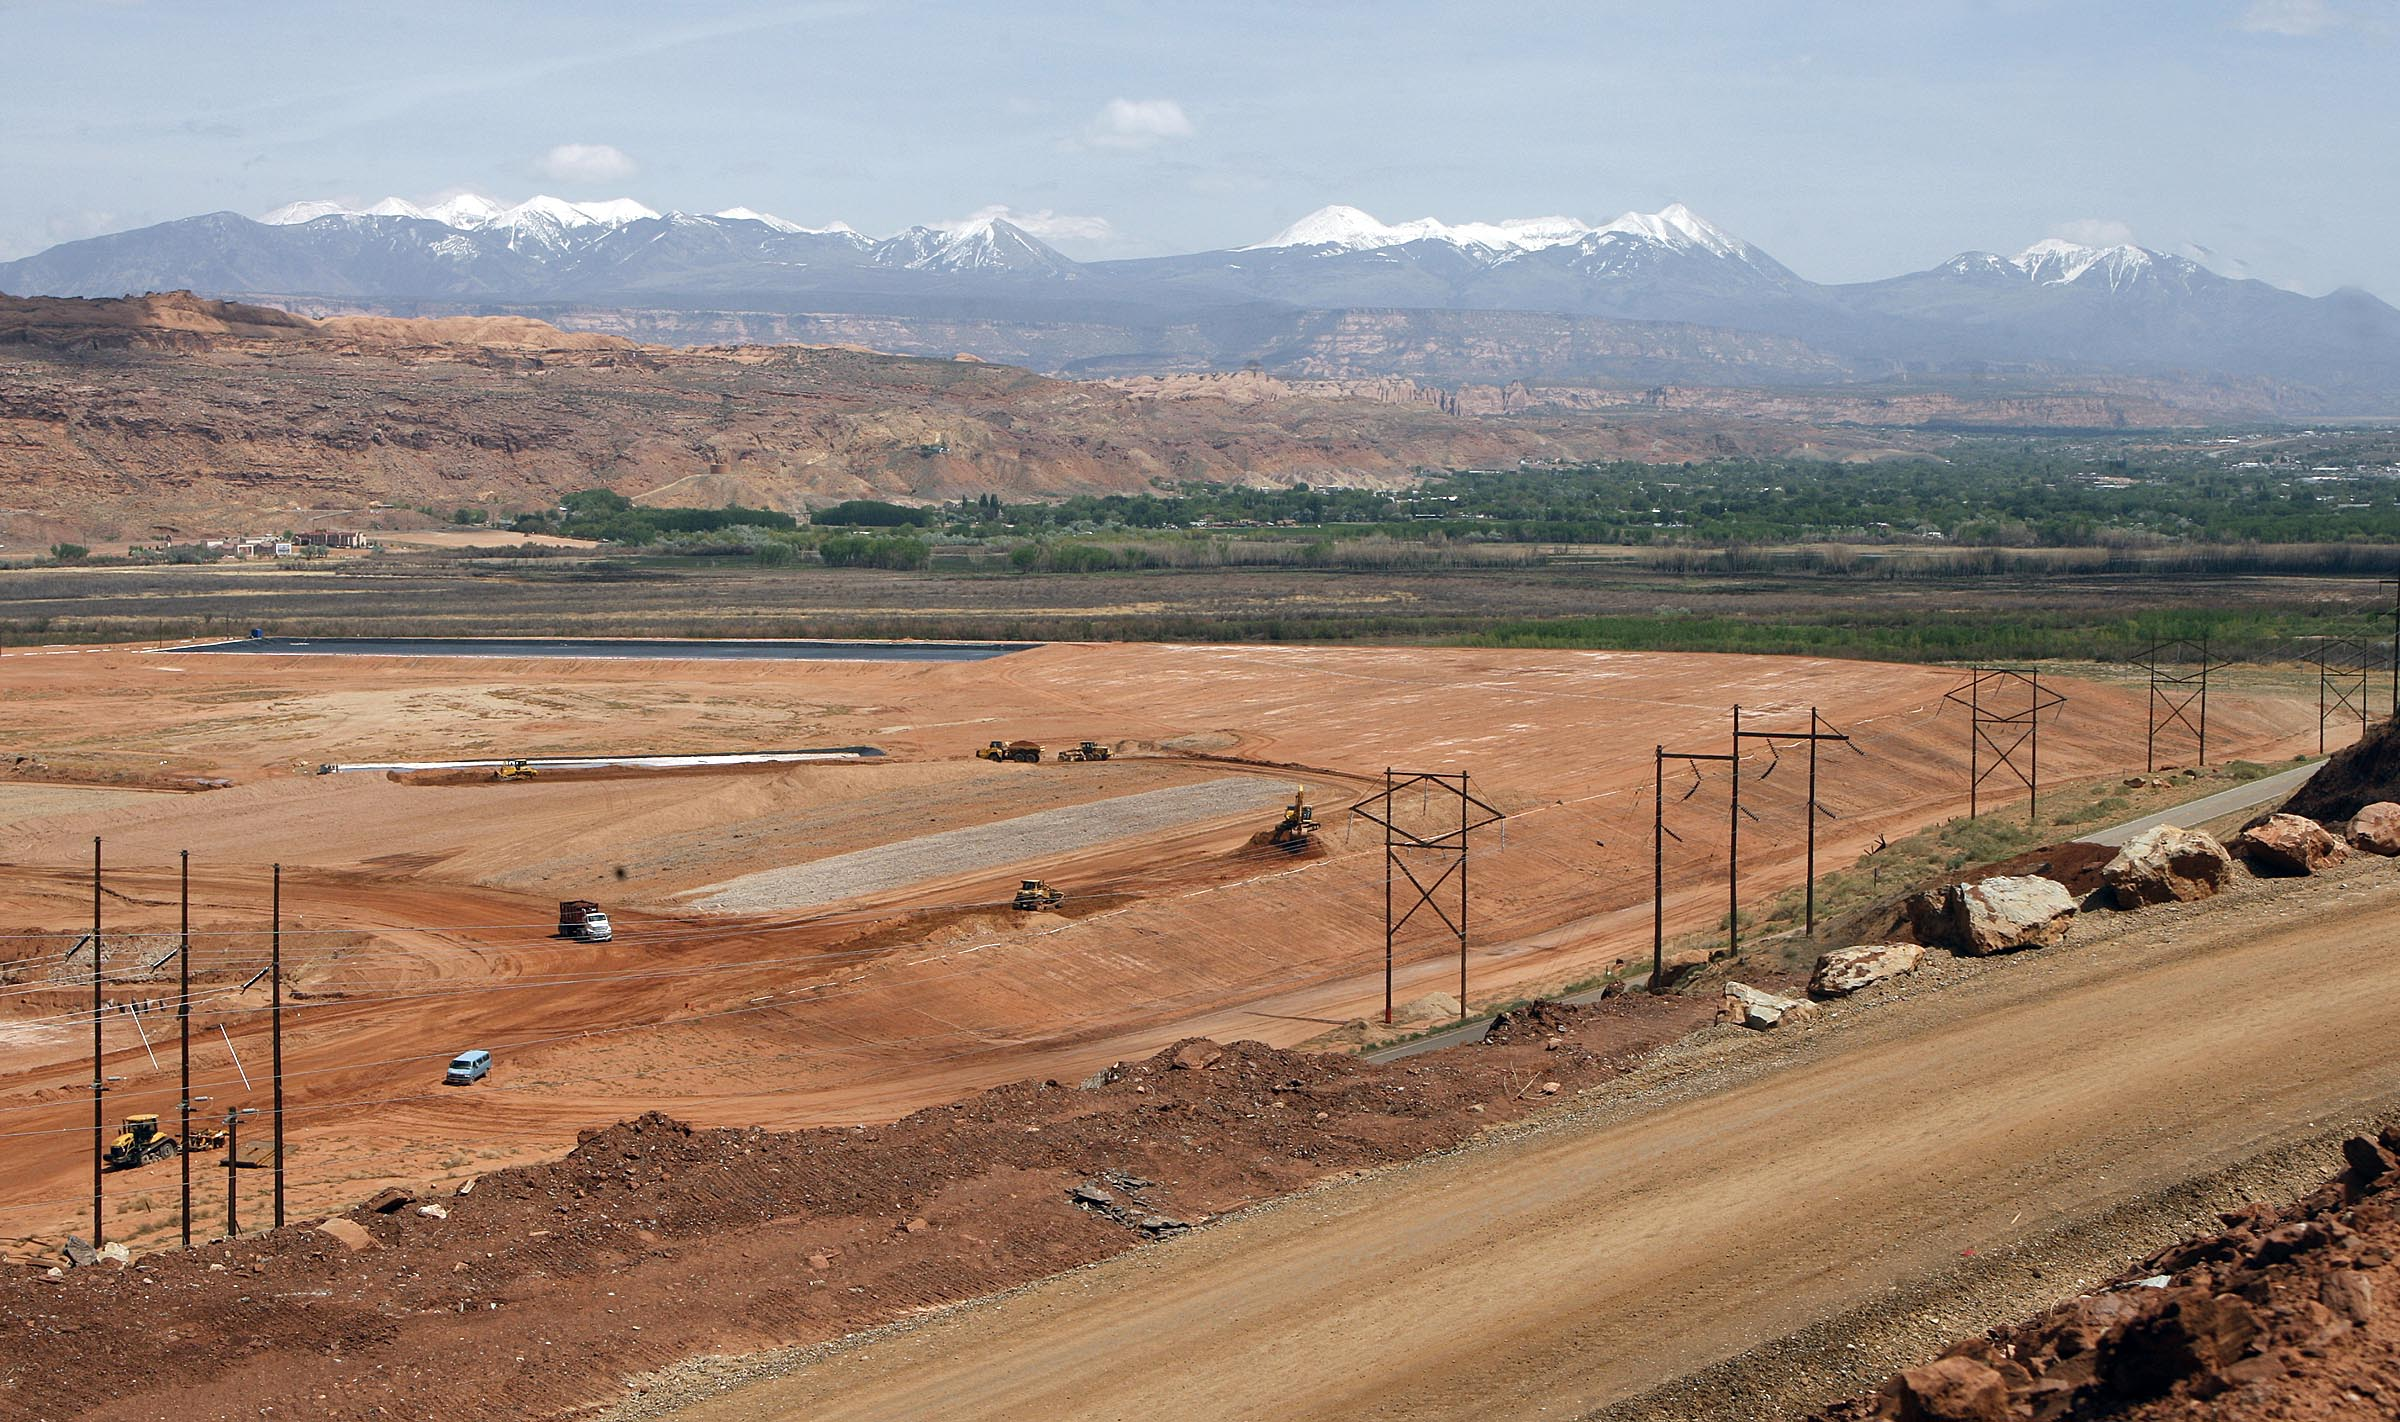 The Altas Mill uranium tailings site is pictured in 2001 with the city of Moab in the background. The radioactive tailings removal project, playing out near the banks of the Colorado River, reached another milestone with the announcement that 11 million tons of the material have safely been removed to a disposal site.